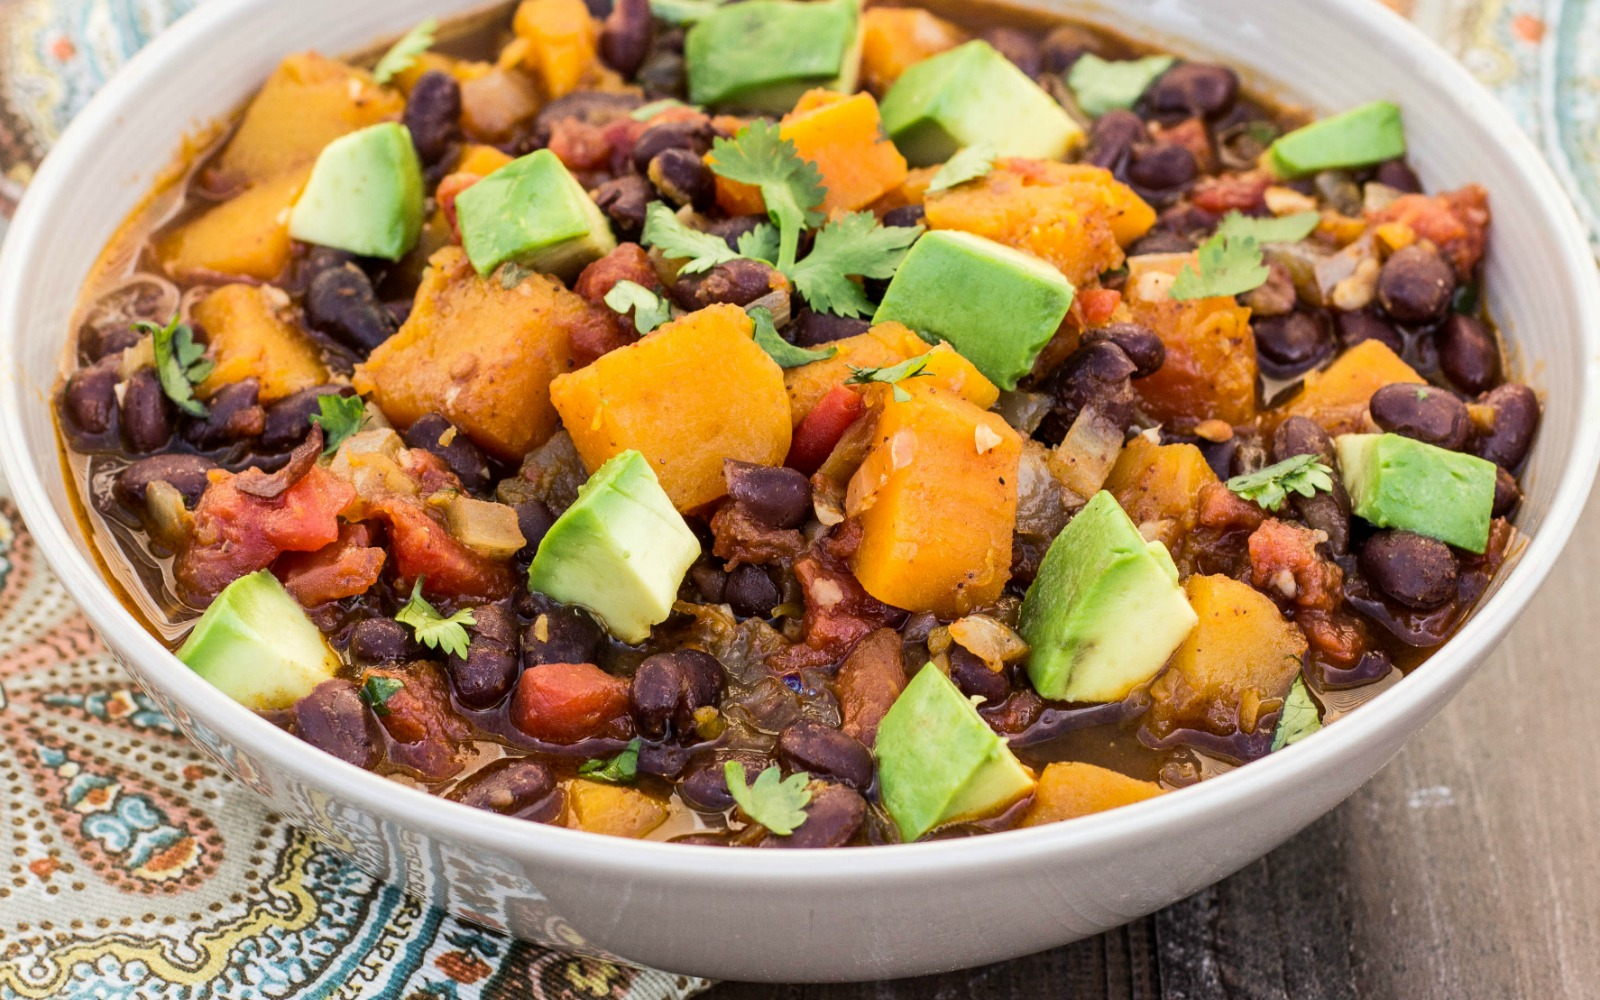 Vegan Butternut Squash and Black Bean Chili